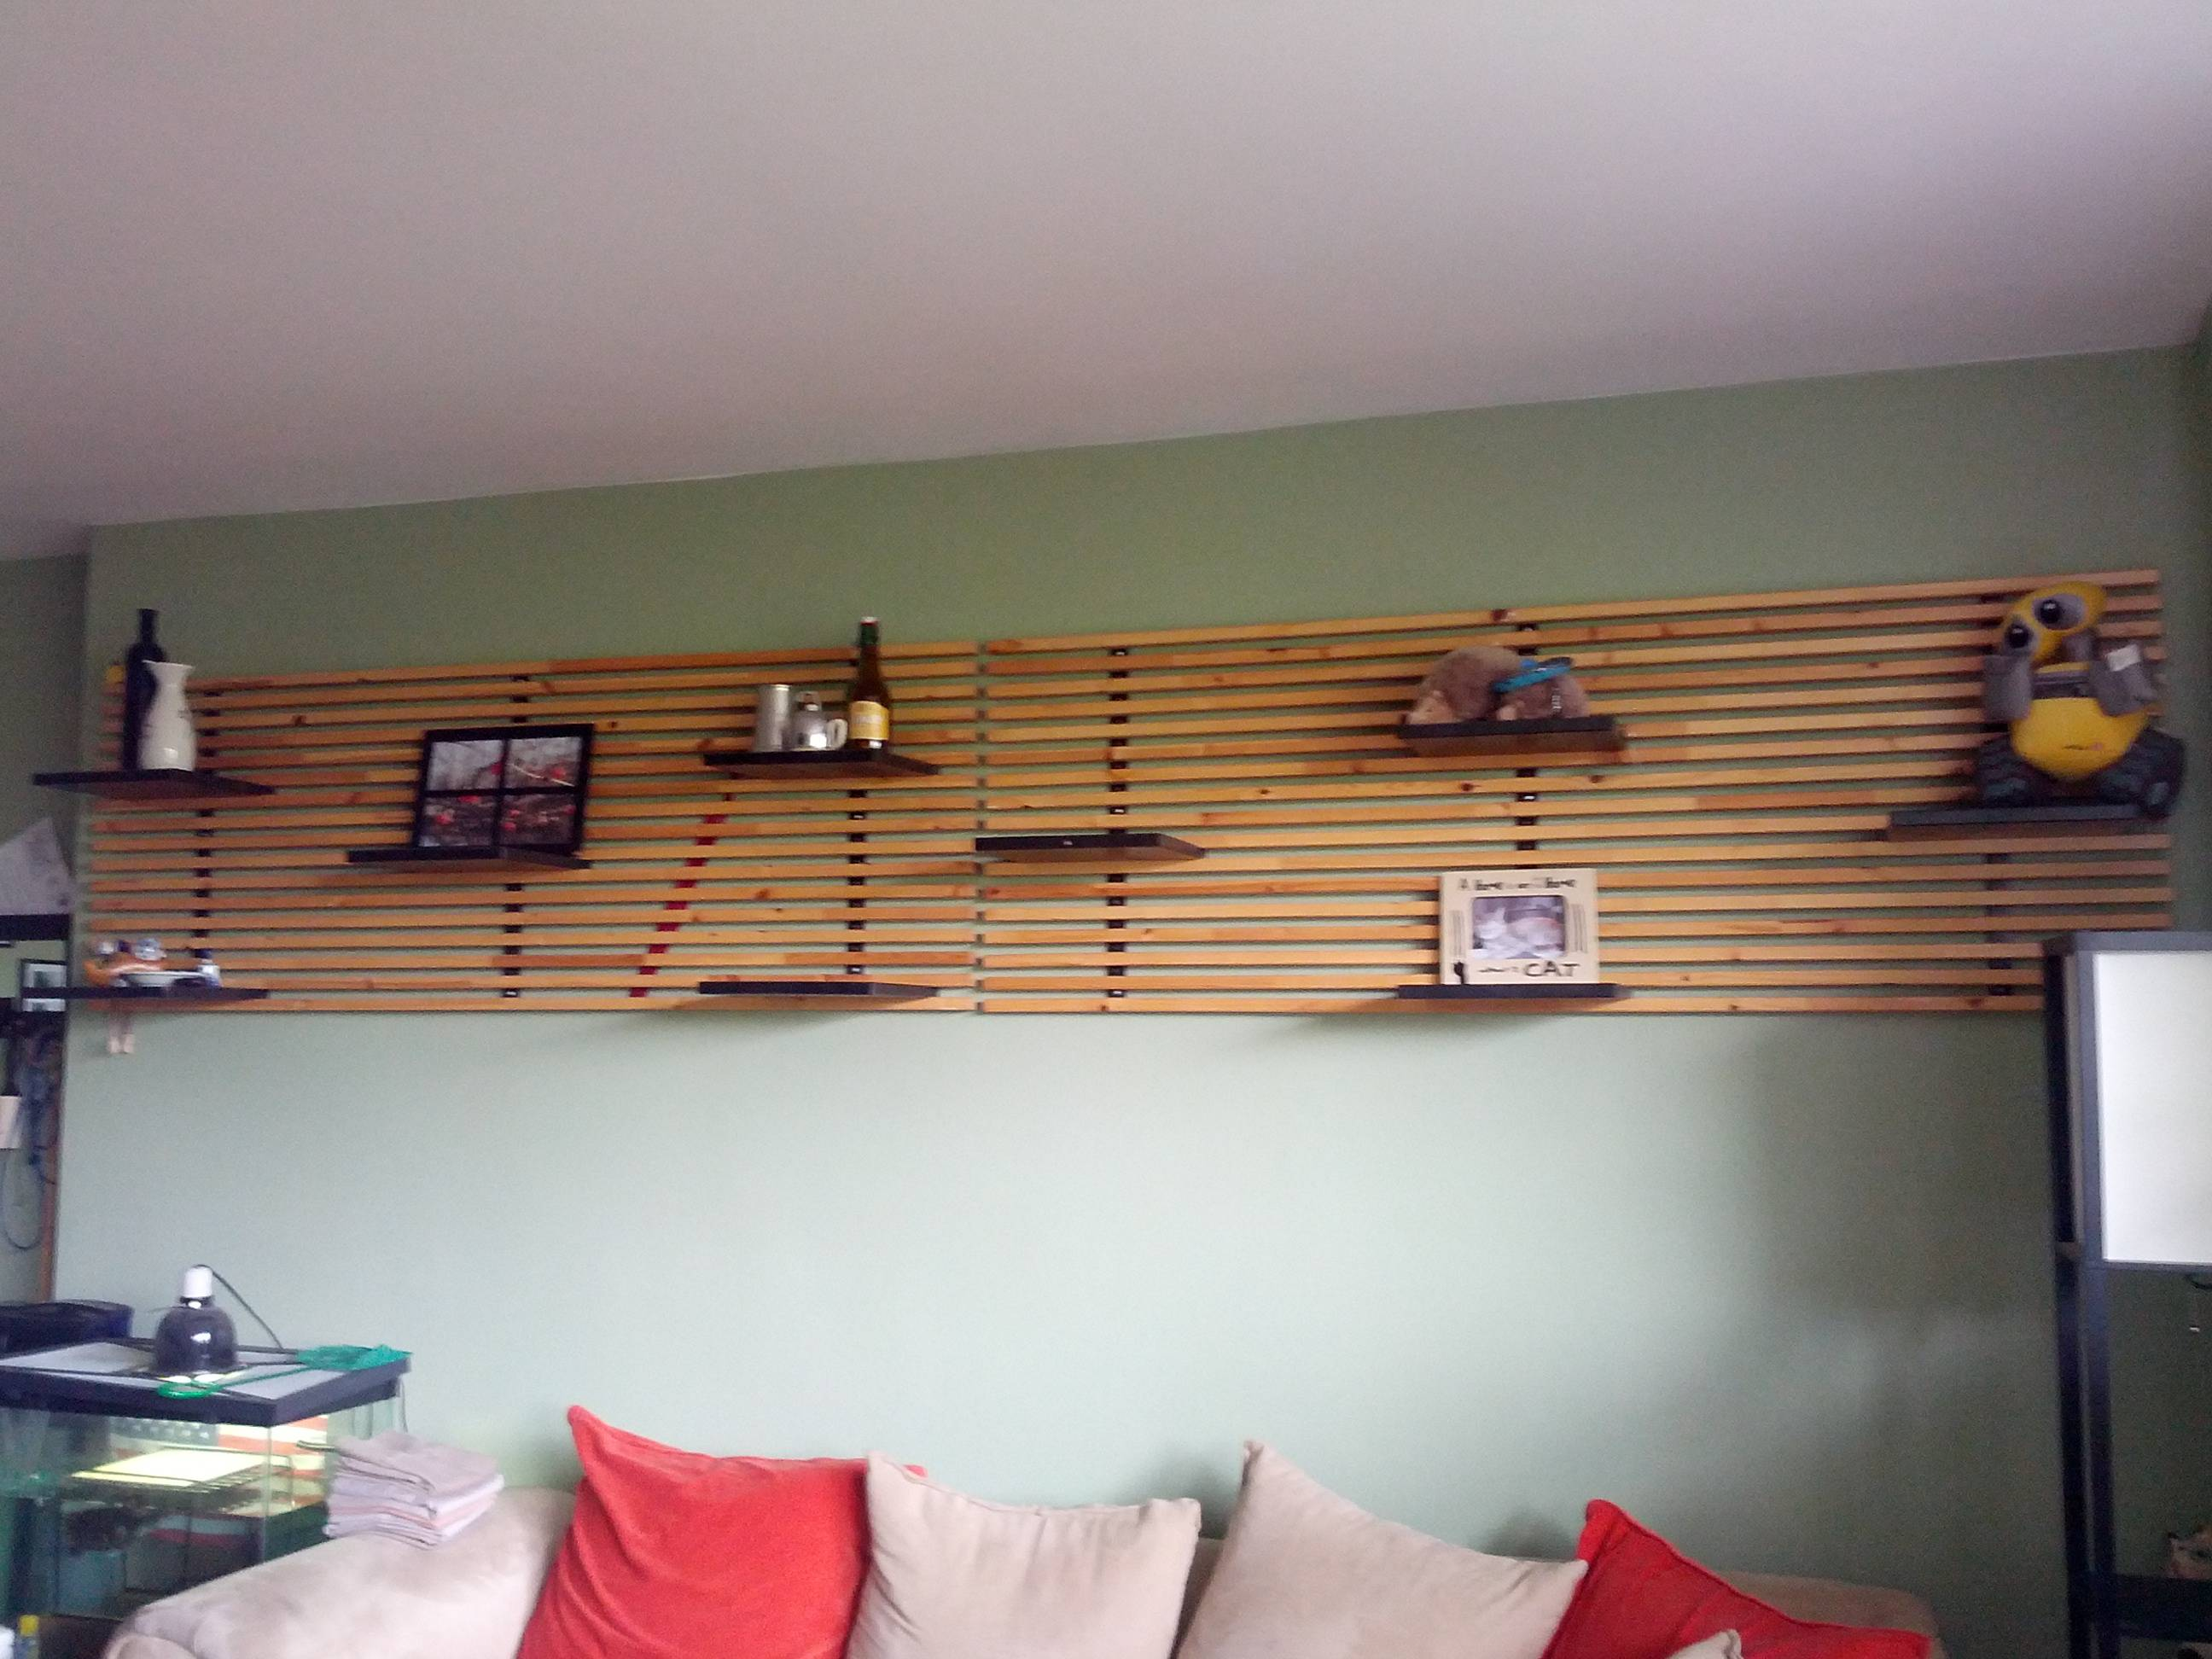 Ikea mandel headboard turned into feature wall shelf panyl - Ikea tete de lit ...